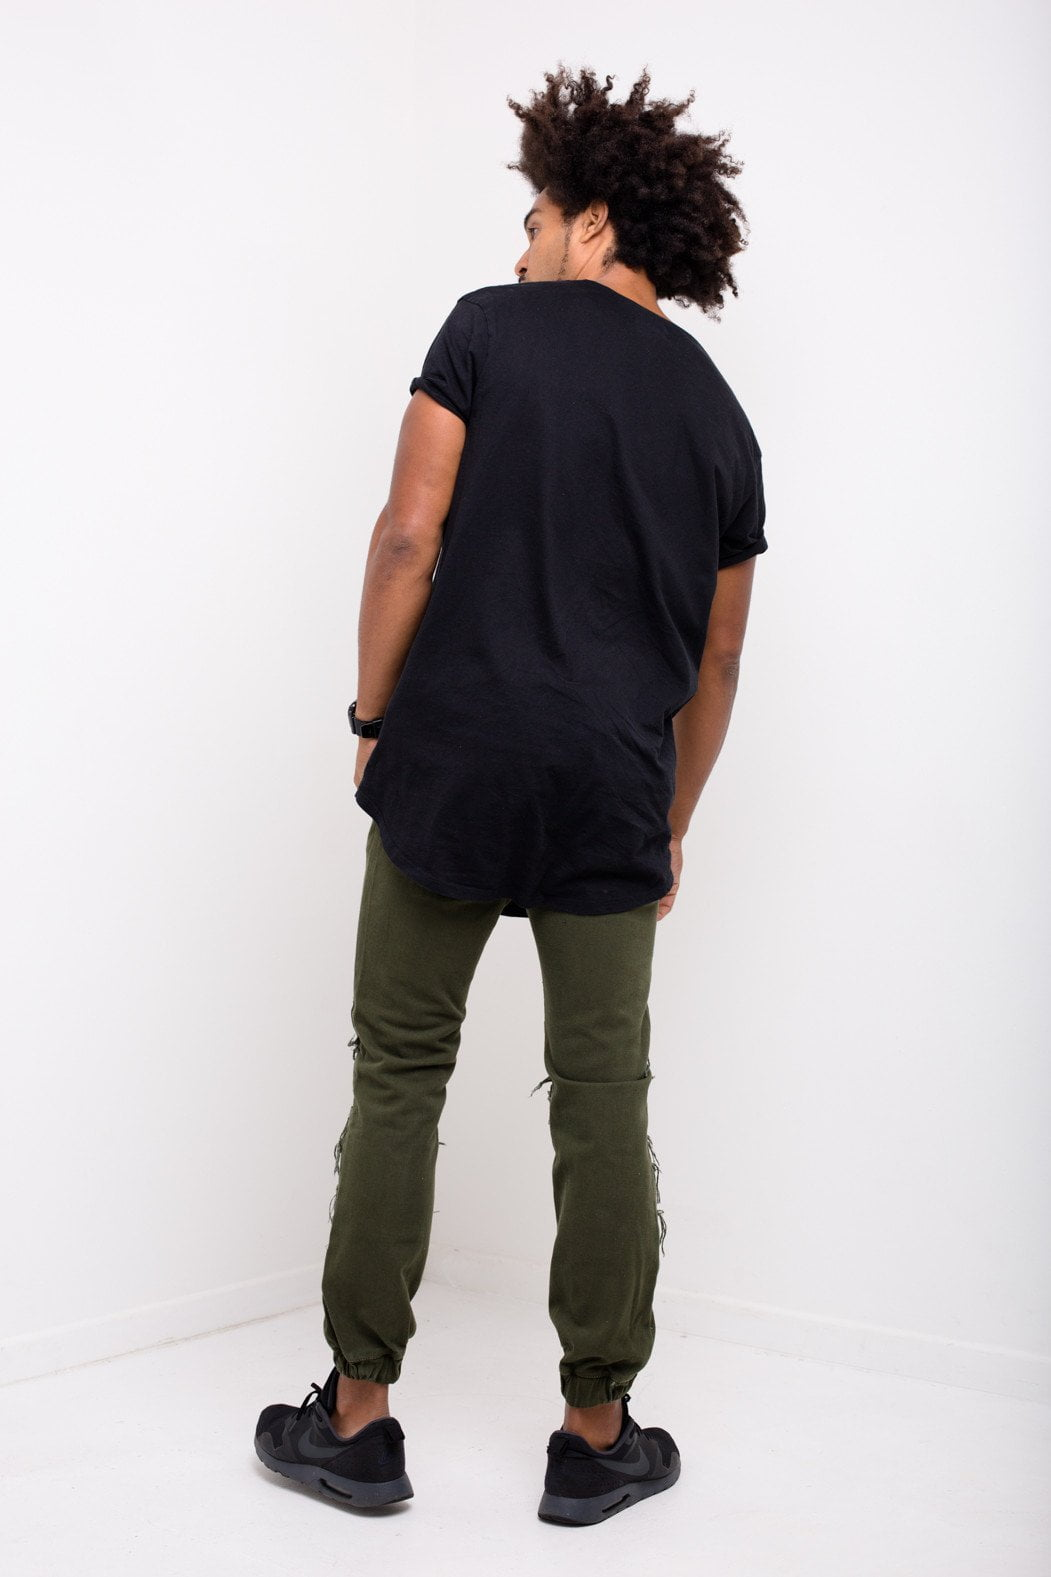 Liquor n Poker - Charleston Distressed drop crotch jogger in Khaki - Liquor N Poker  Liquor N Poker